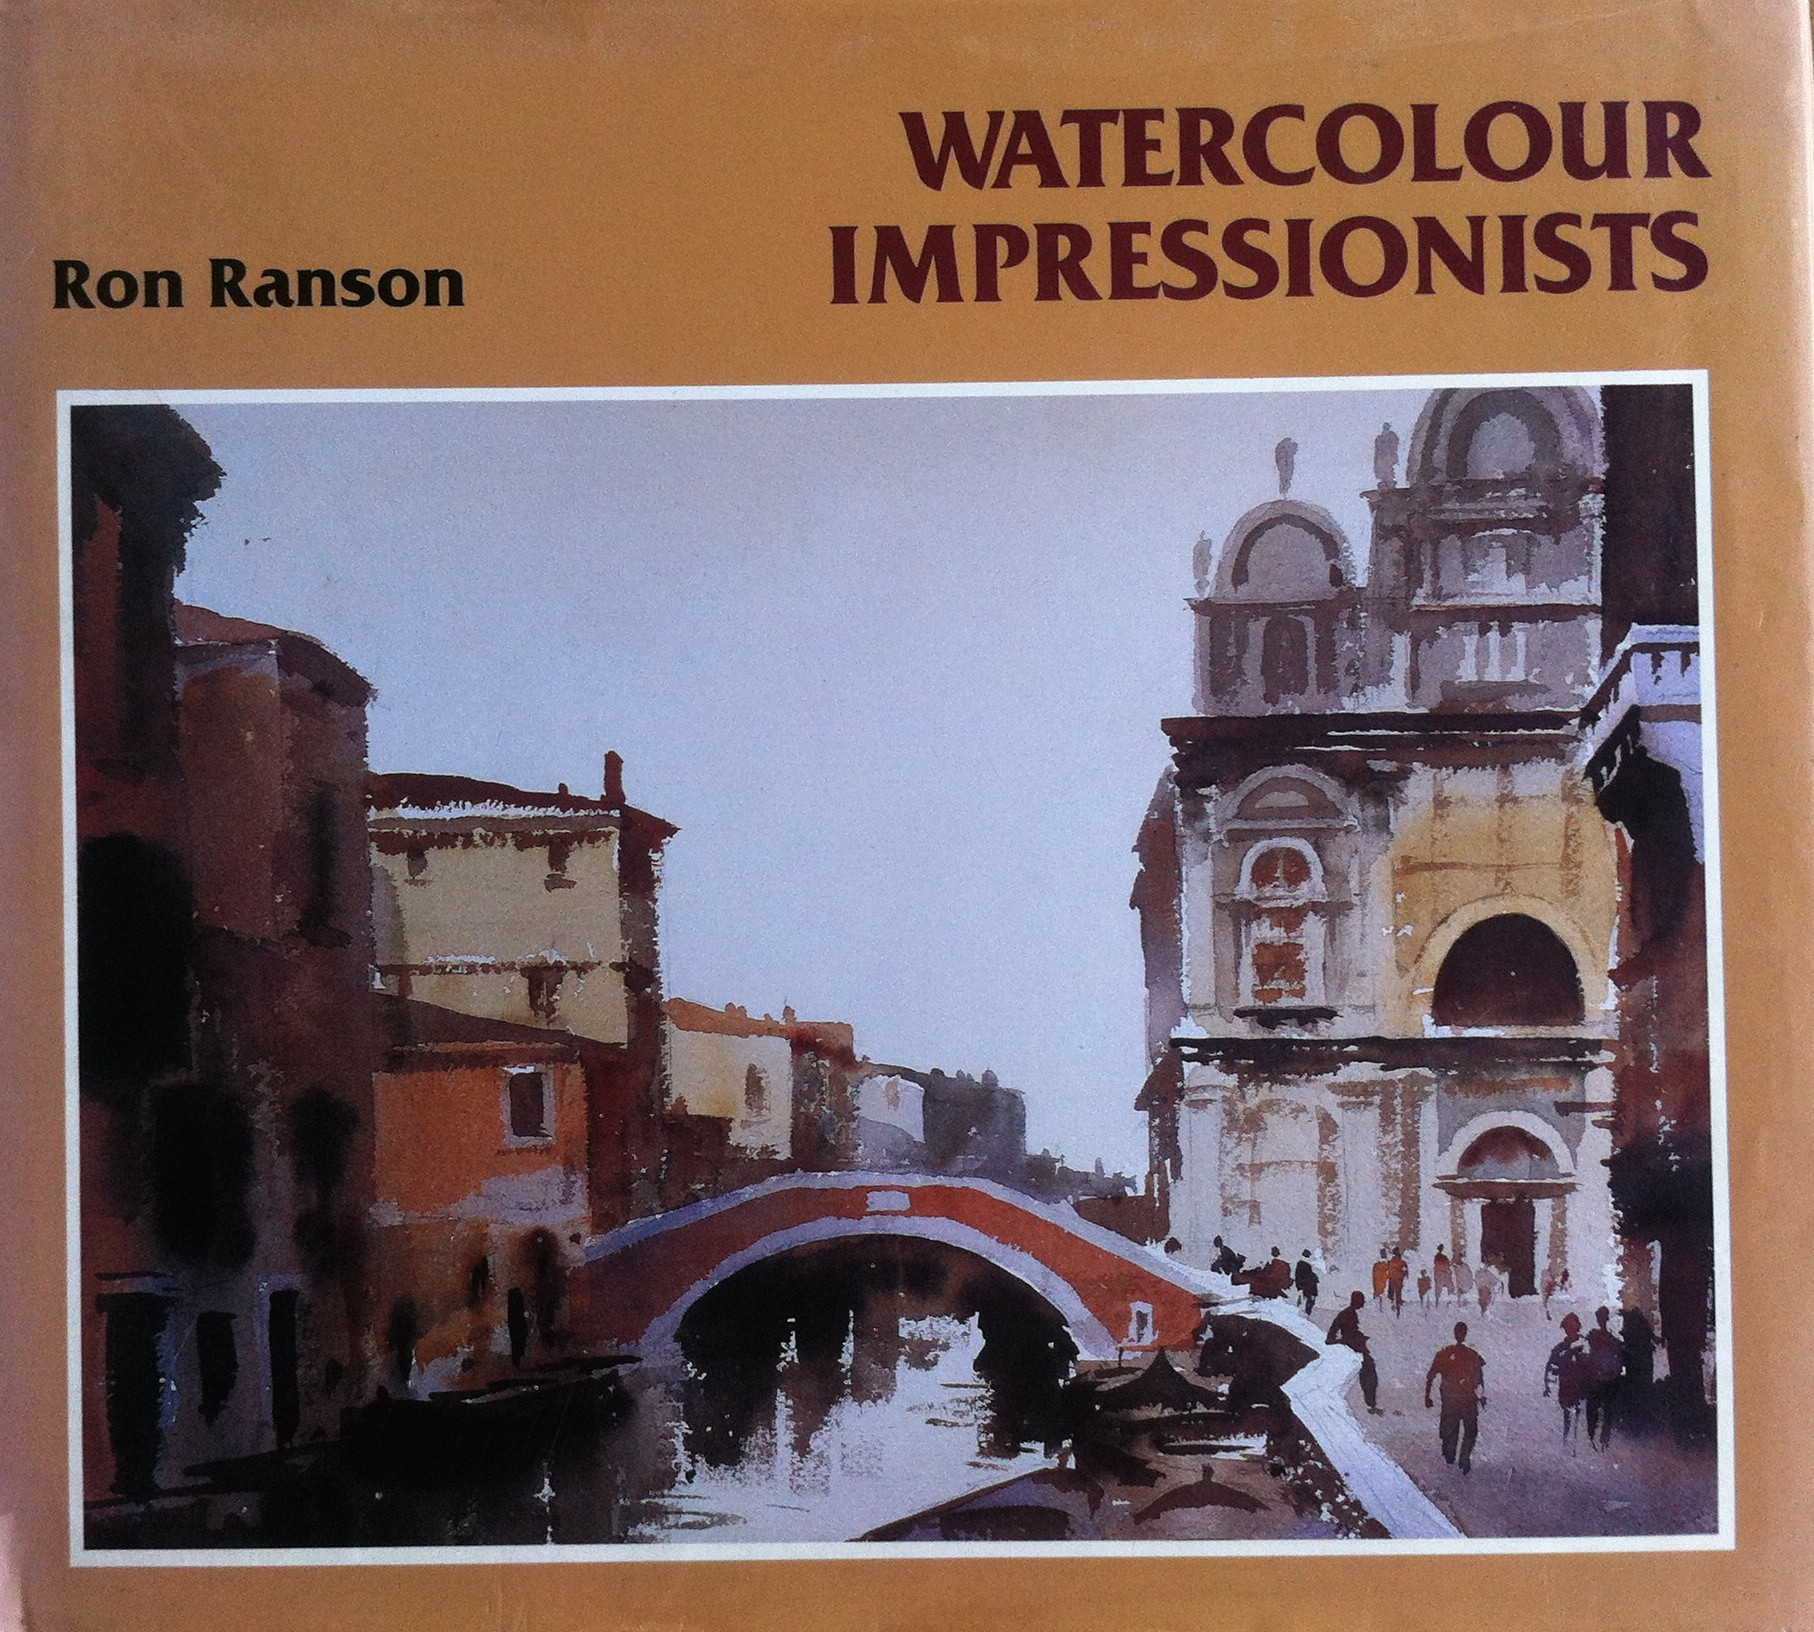 Watercolour Impressionists, Ron Ranson